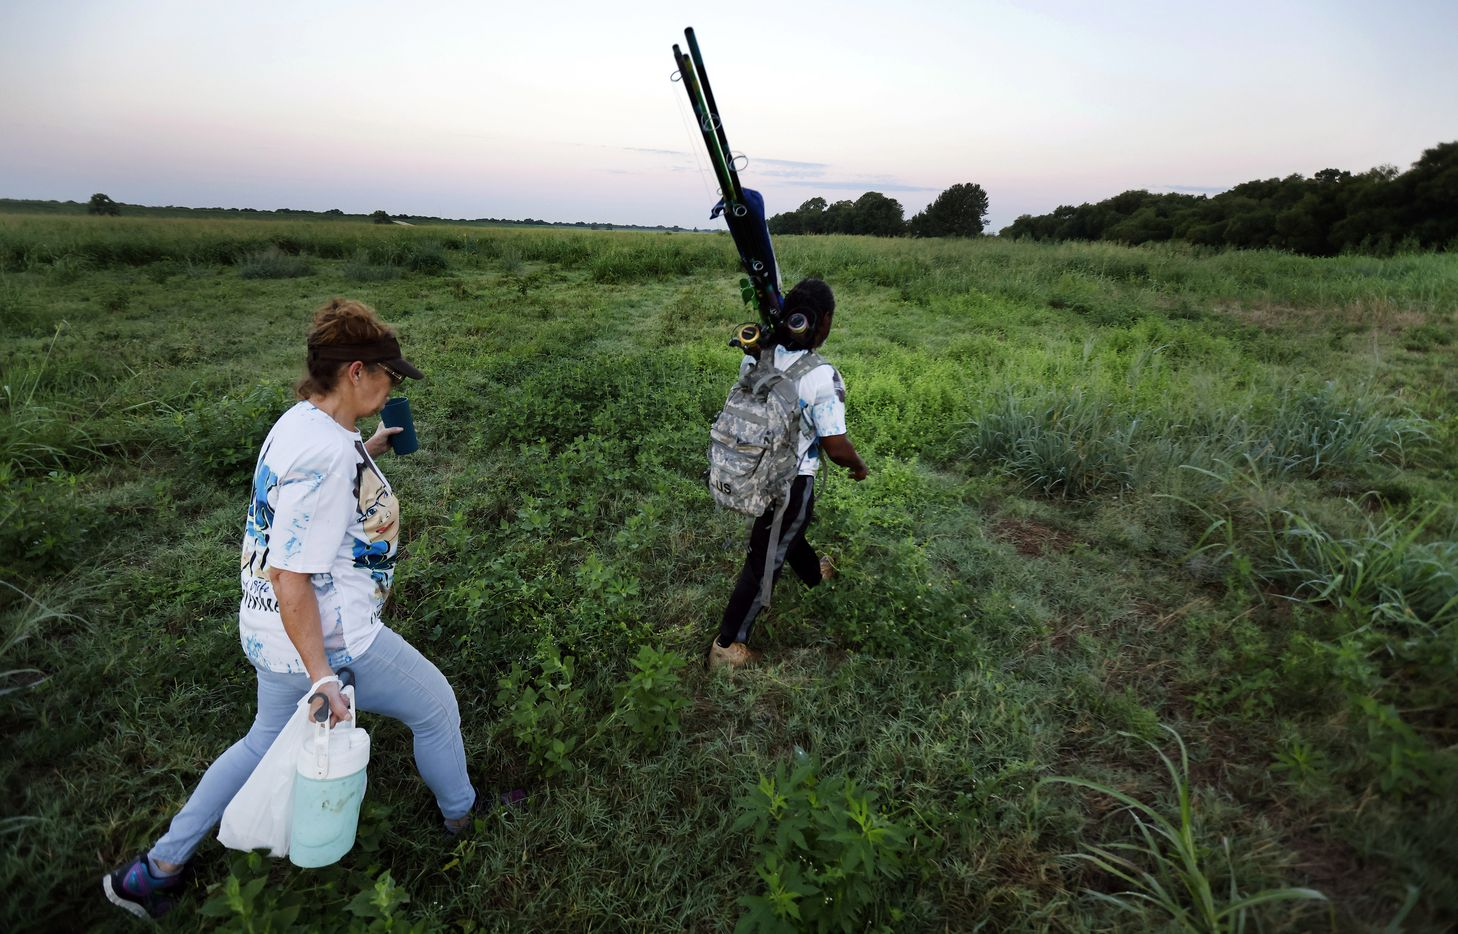 In search for their fishing spot, Odell Allen and his wife Beverly Rasnick hike through high grass and vegetation of the Trinity River bottoms near the Westmoreland bridge, Monday, August 30, 2021. Allen's viral videos of him catching 6-7 foot alligator gar in the Trinity River have made Dallas a popular spot for anglers all over the world who want to hook a gar. It has also led to overfishing of the native species, TPWD says. Texas Parks and Wildlife Department is adding new regulations to limit how many gar each angler can harvest in a year. Allen catches and releases his gars. (Tom Fox/The Dallas Morning News)